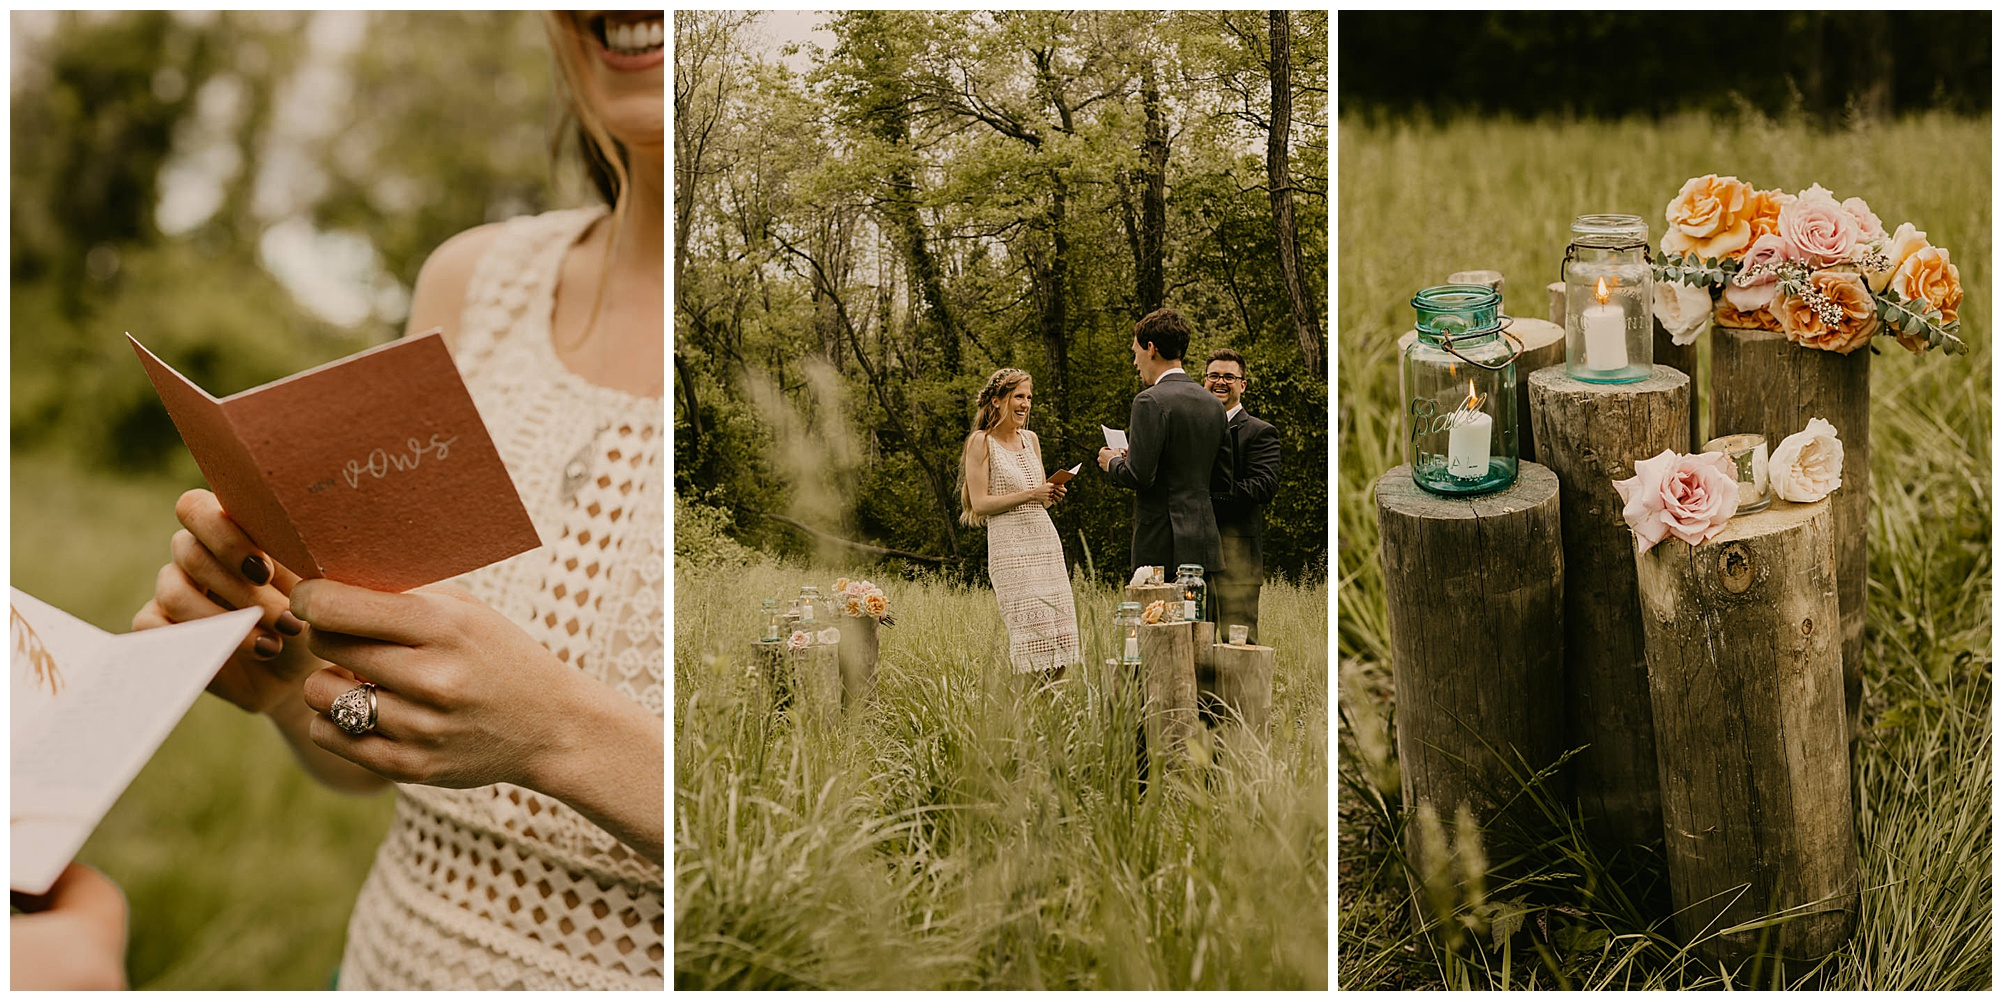 green glass lanterns, candles, blush and light peach bouquet, tree stump pillars ceremony decor | chic boho style wedding and carefree elopement inspo at prancing deer farm now featured on my eastern shore wedding blog